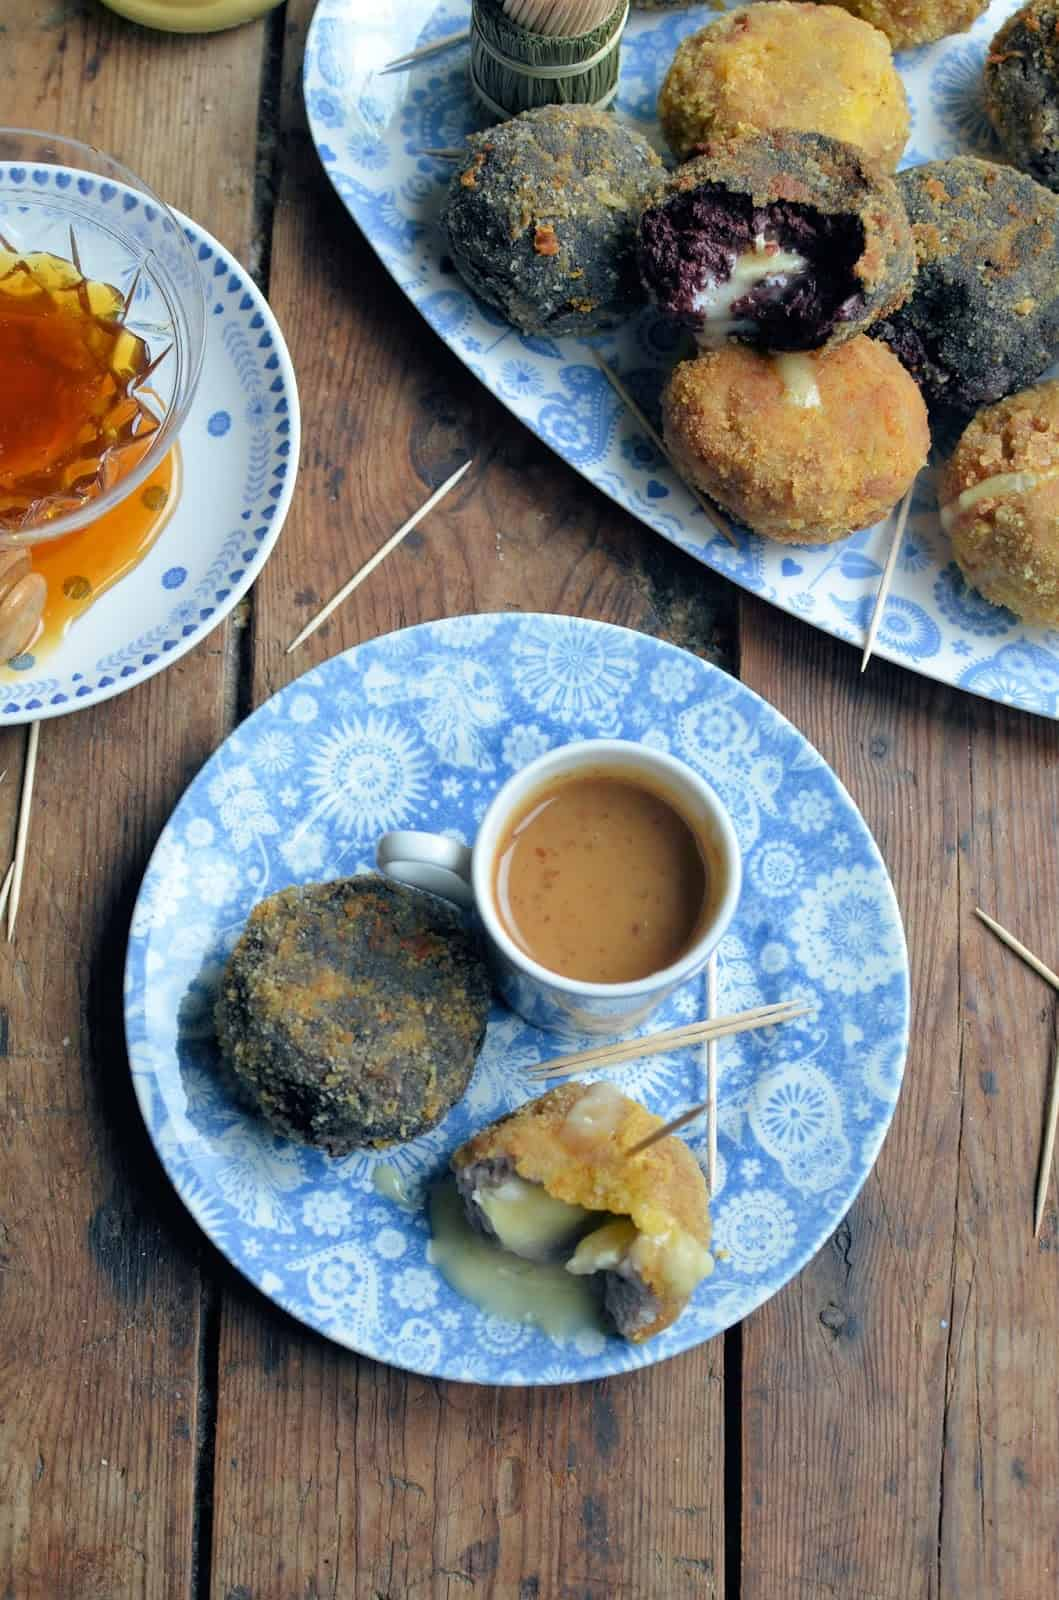 Rustic camembert Scotch eggs with mustard and honey dip